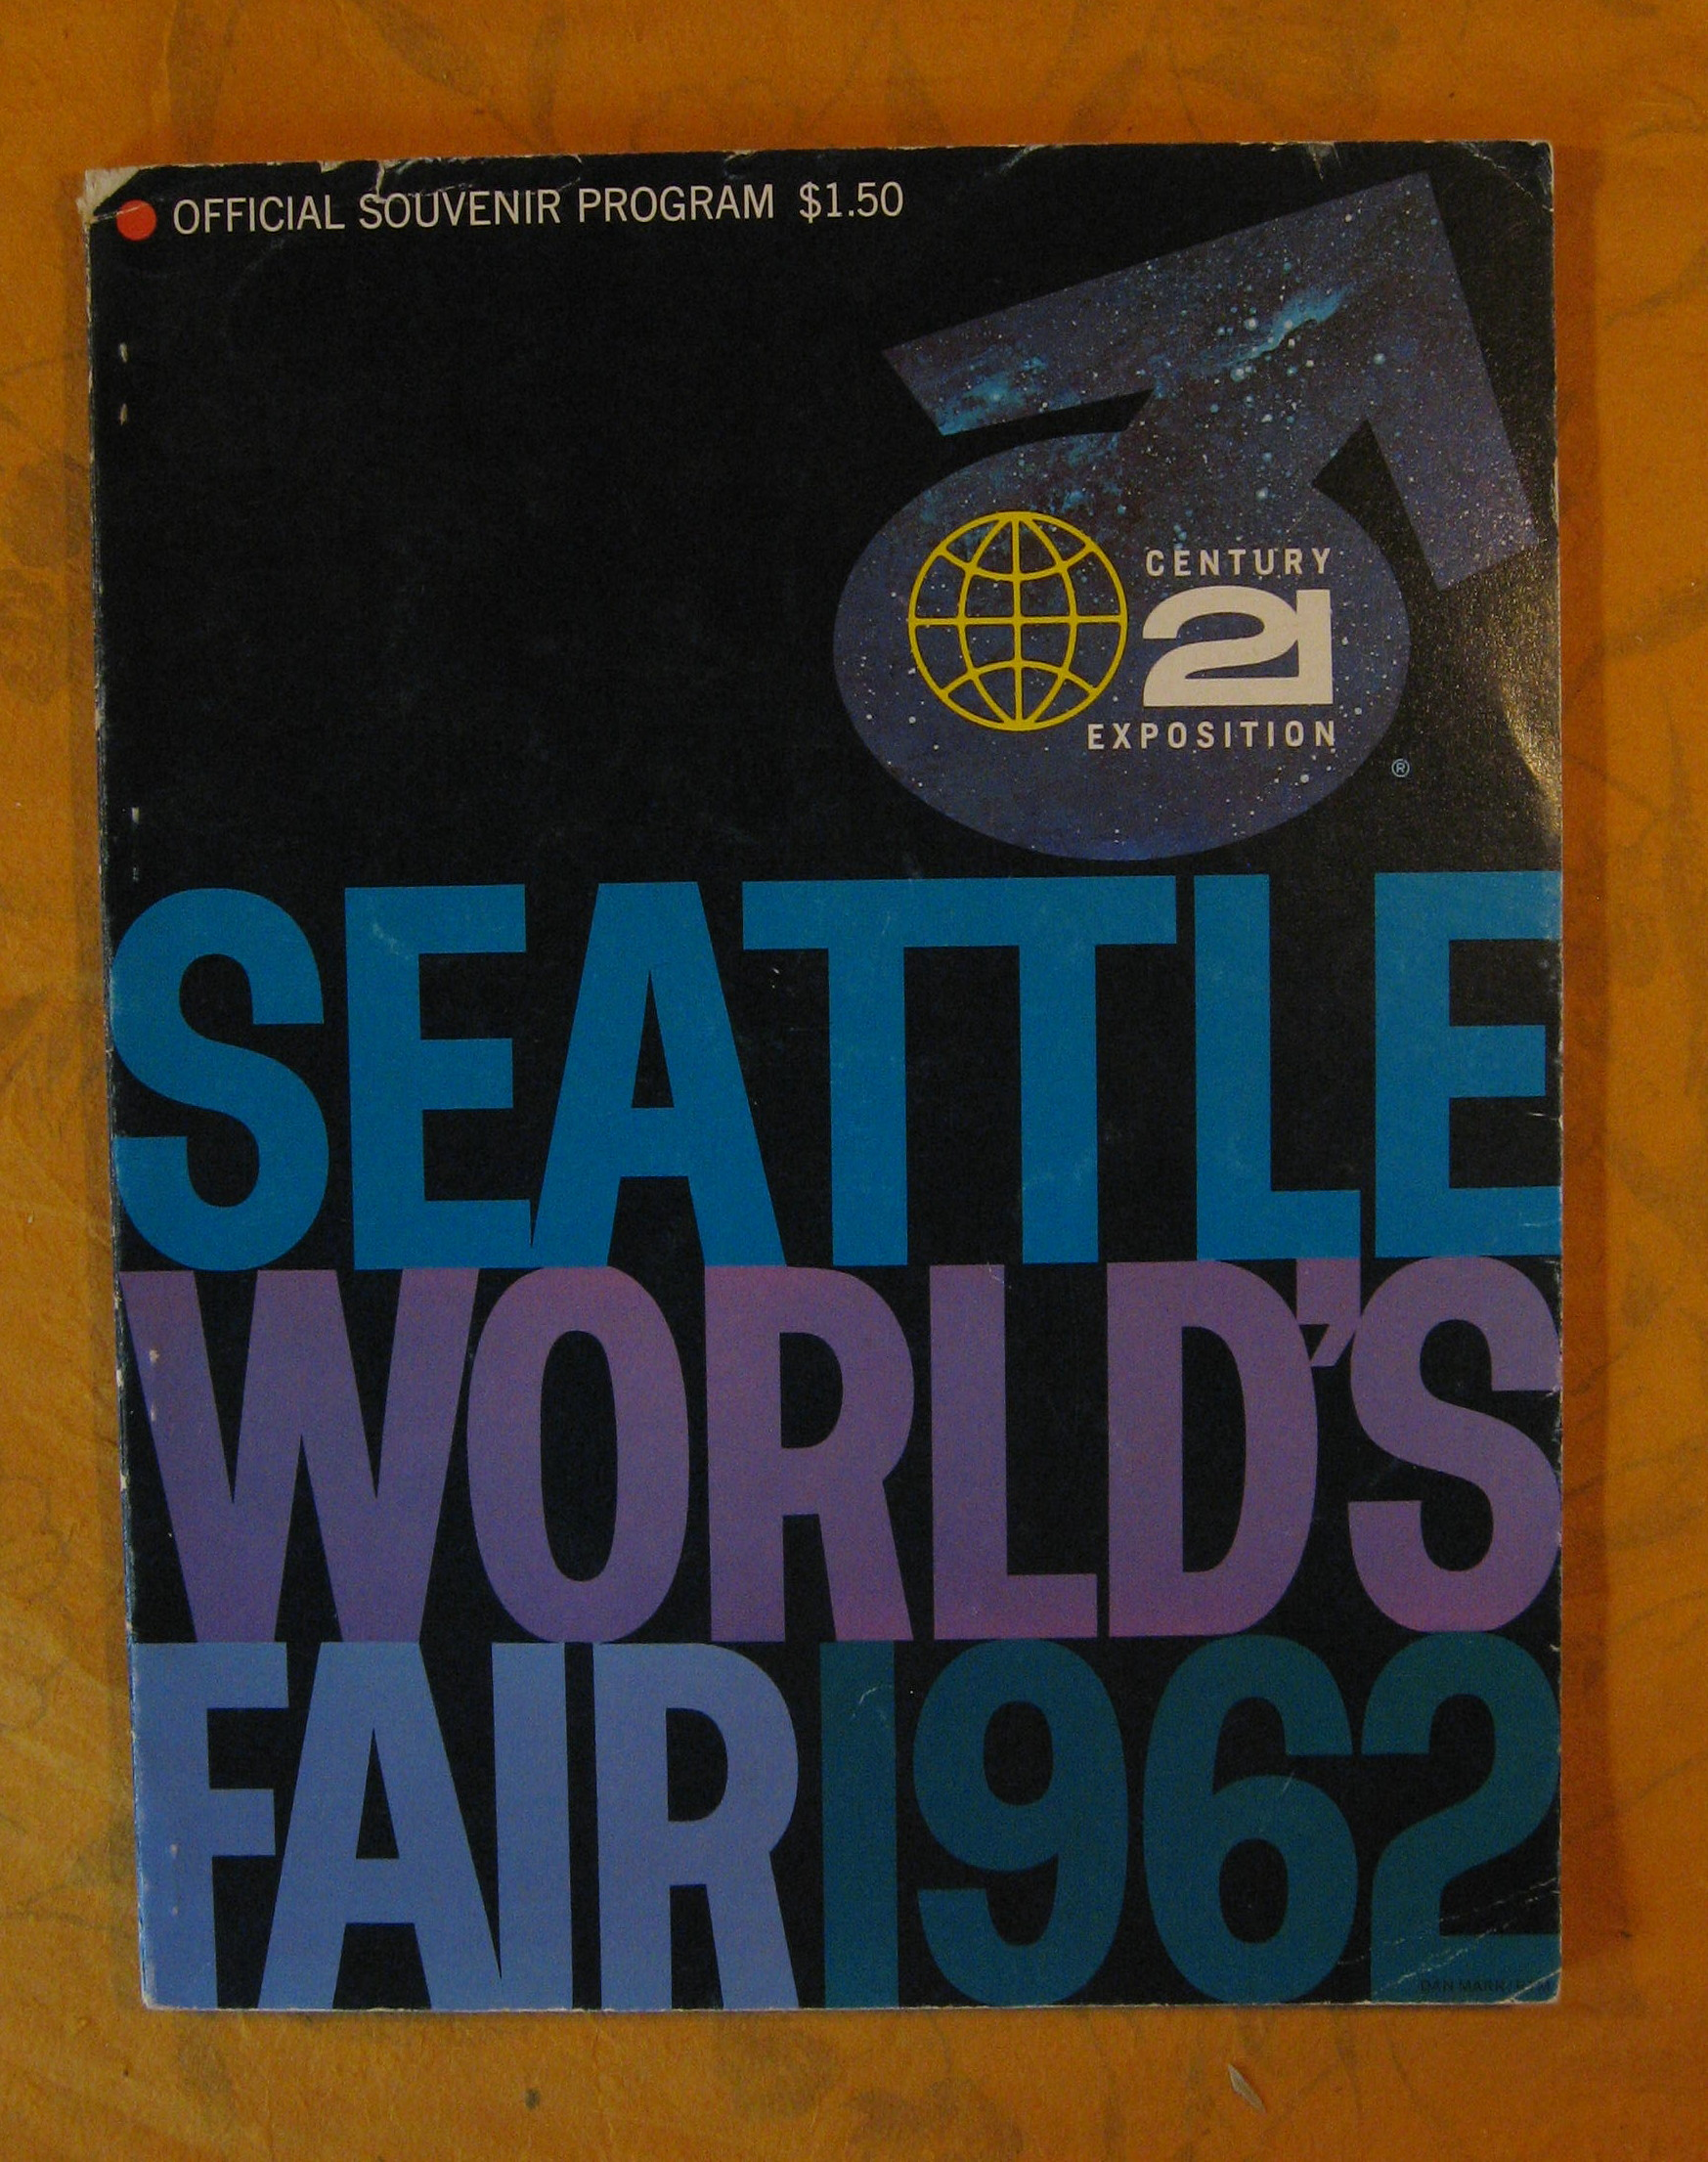 Image for Seattle World's Fair 1962, Century 21 Exposition, Official Souvenir Program